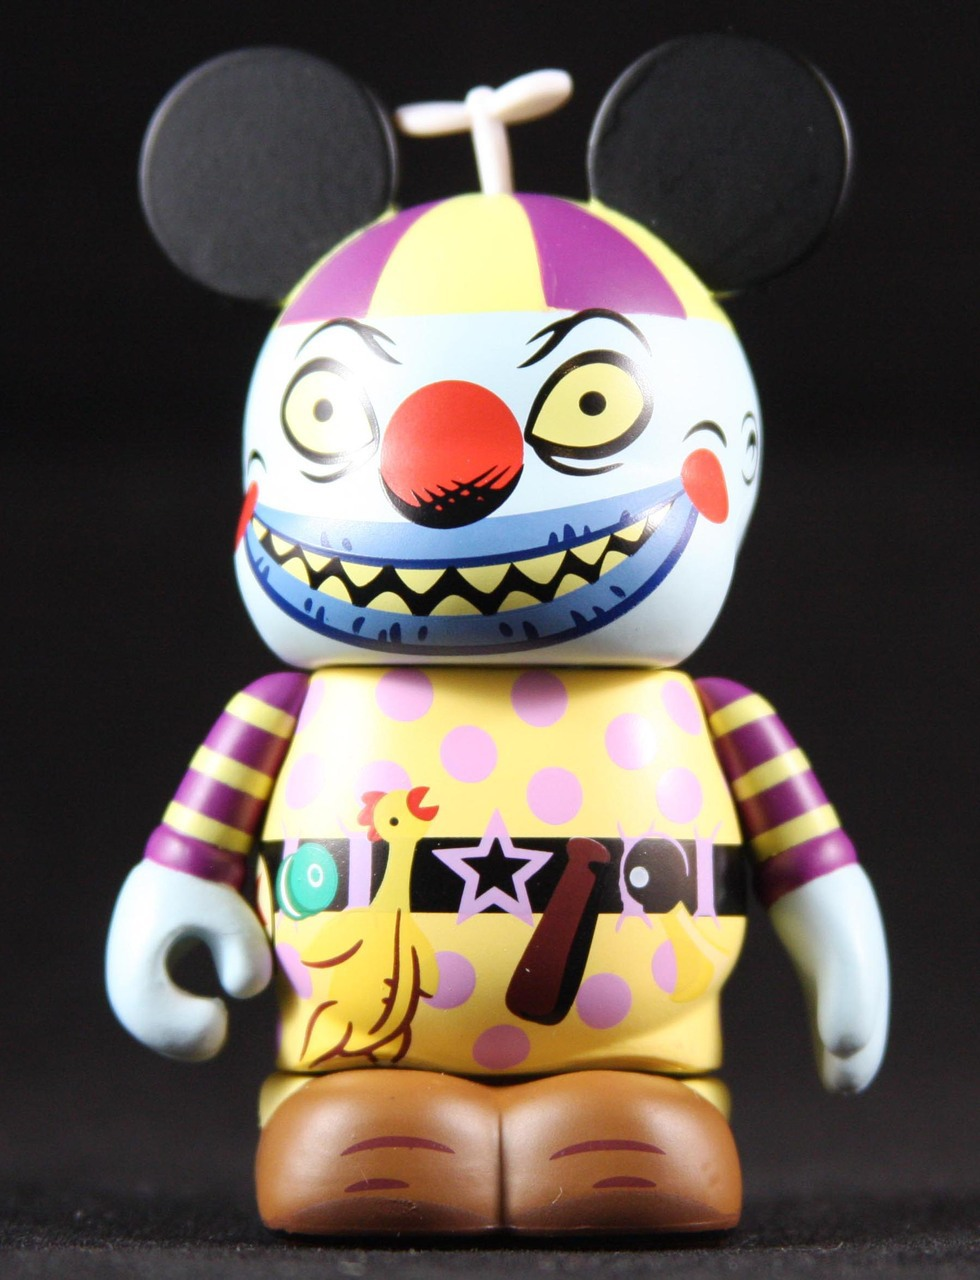 vinylmation nightmare before christmas 2 clown with tearaway face - A Nightmare Before Christmas 2